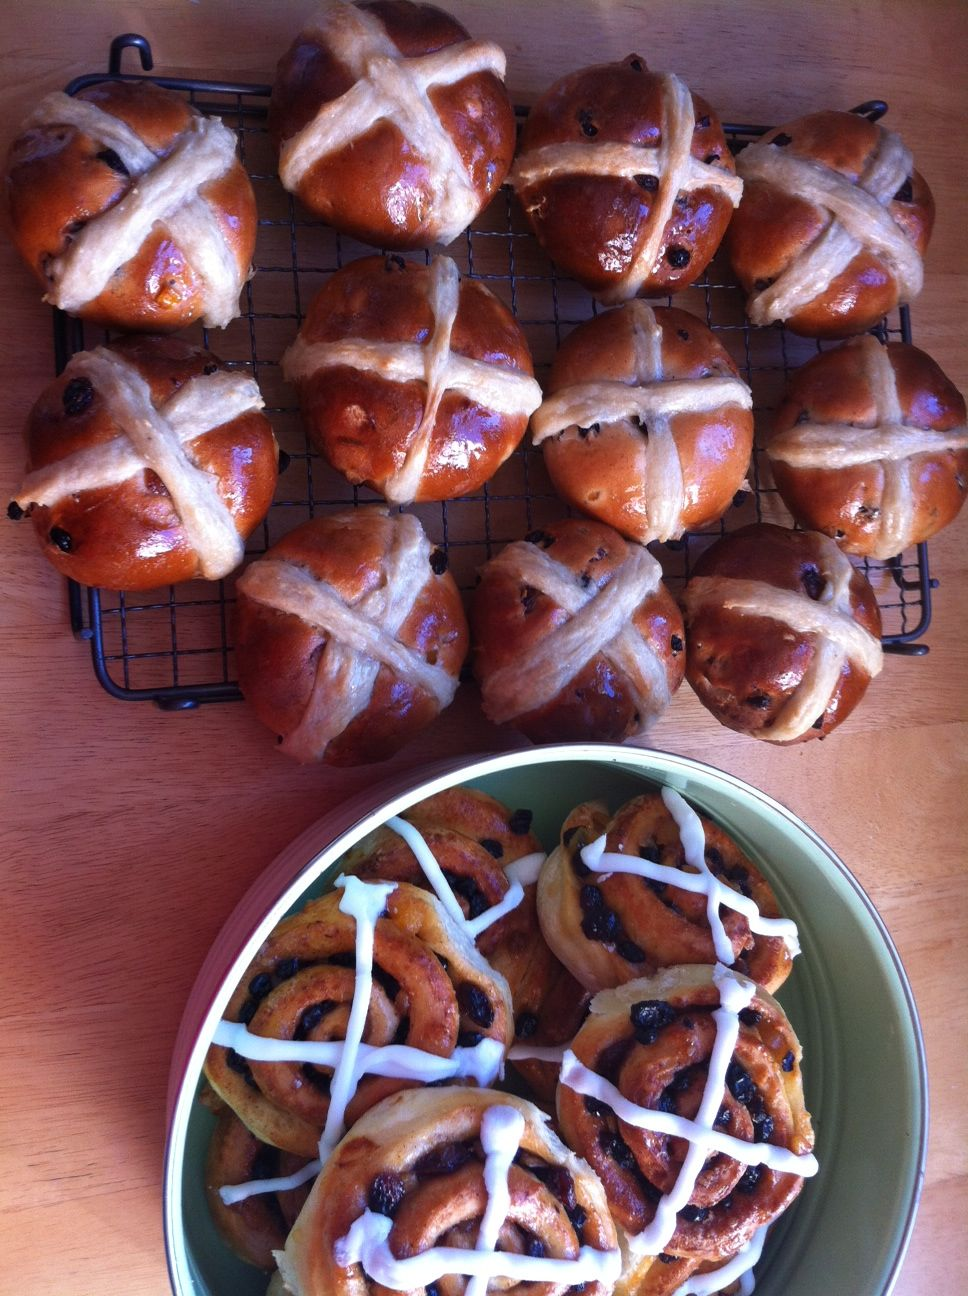 Hot cross buns ready for the pop up shop